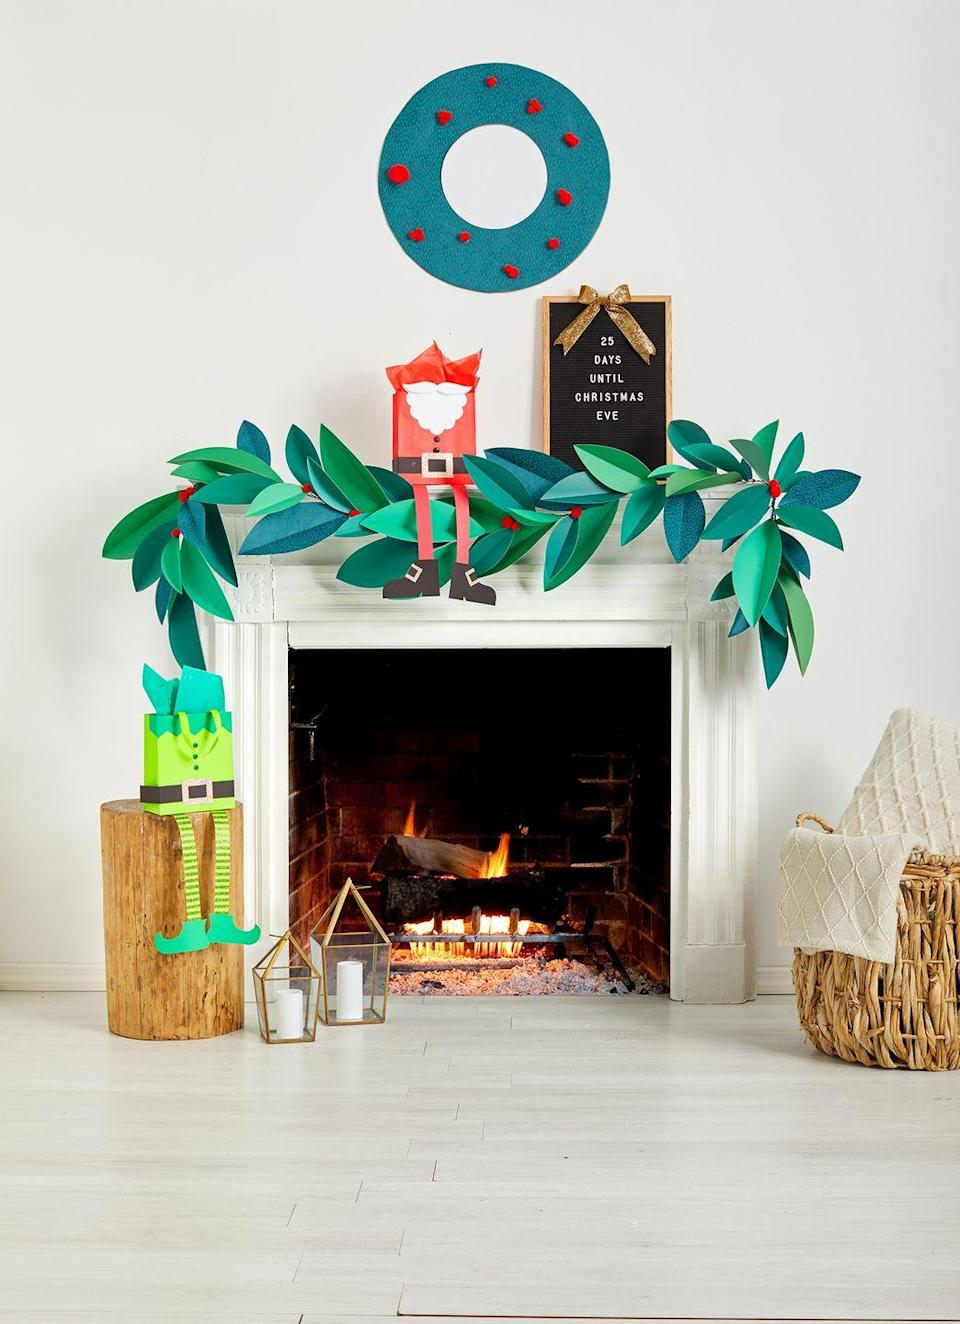 <p>Snag construction paper in two complementary green shades and cut out leaf patterns to make your own Instagram-worthy garland for your mantel.</p>